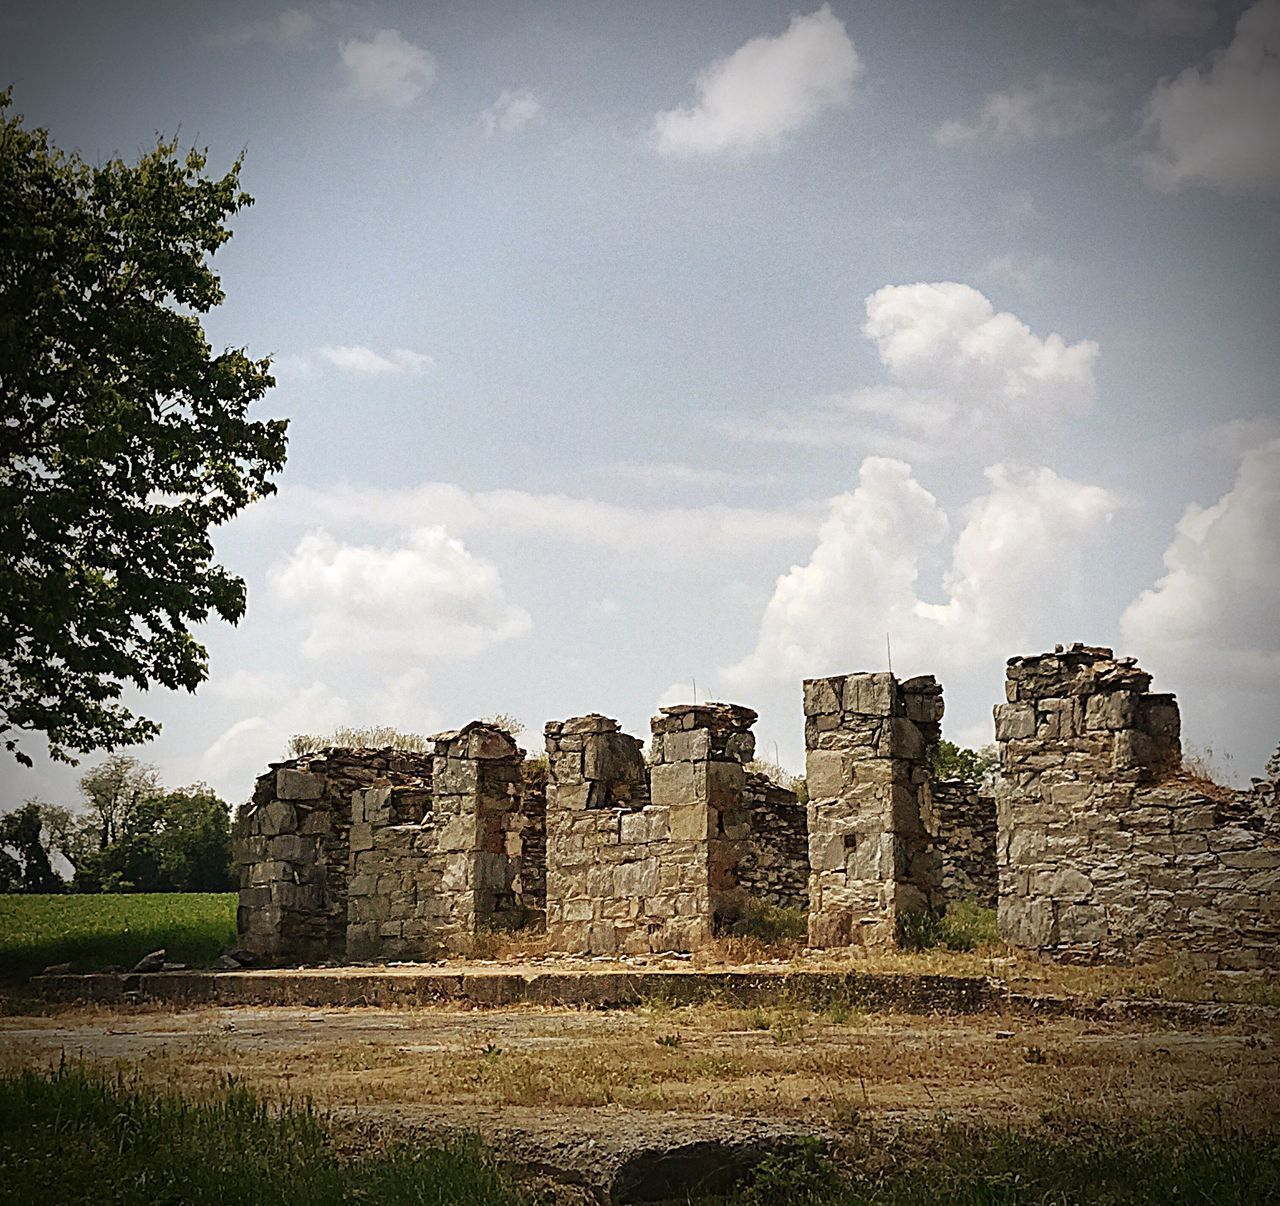 History Architecture Old Ruin Sky Cloud - Sky Built Structure No People Day Tree Outdoors Rural Scene Brick Wall Building Exterior Man Made Structure